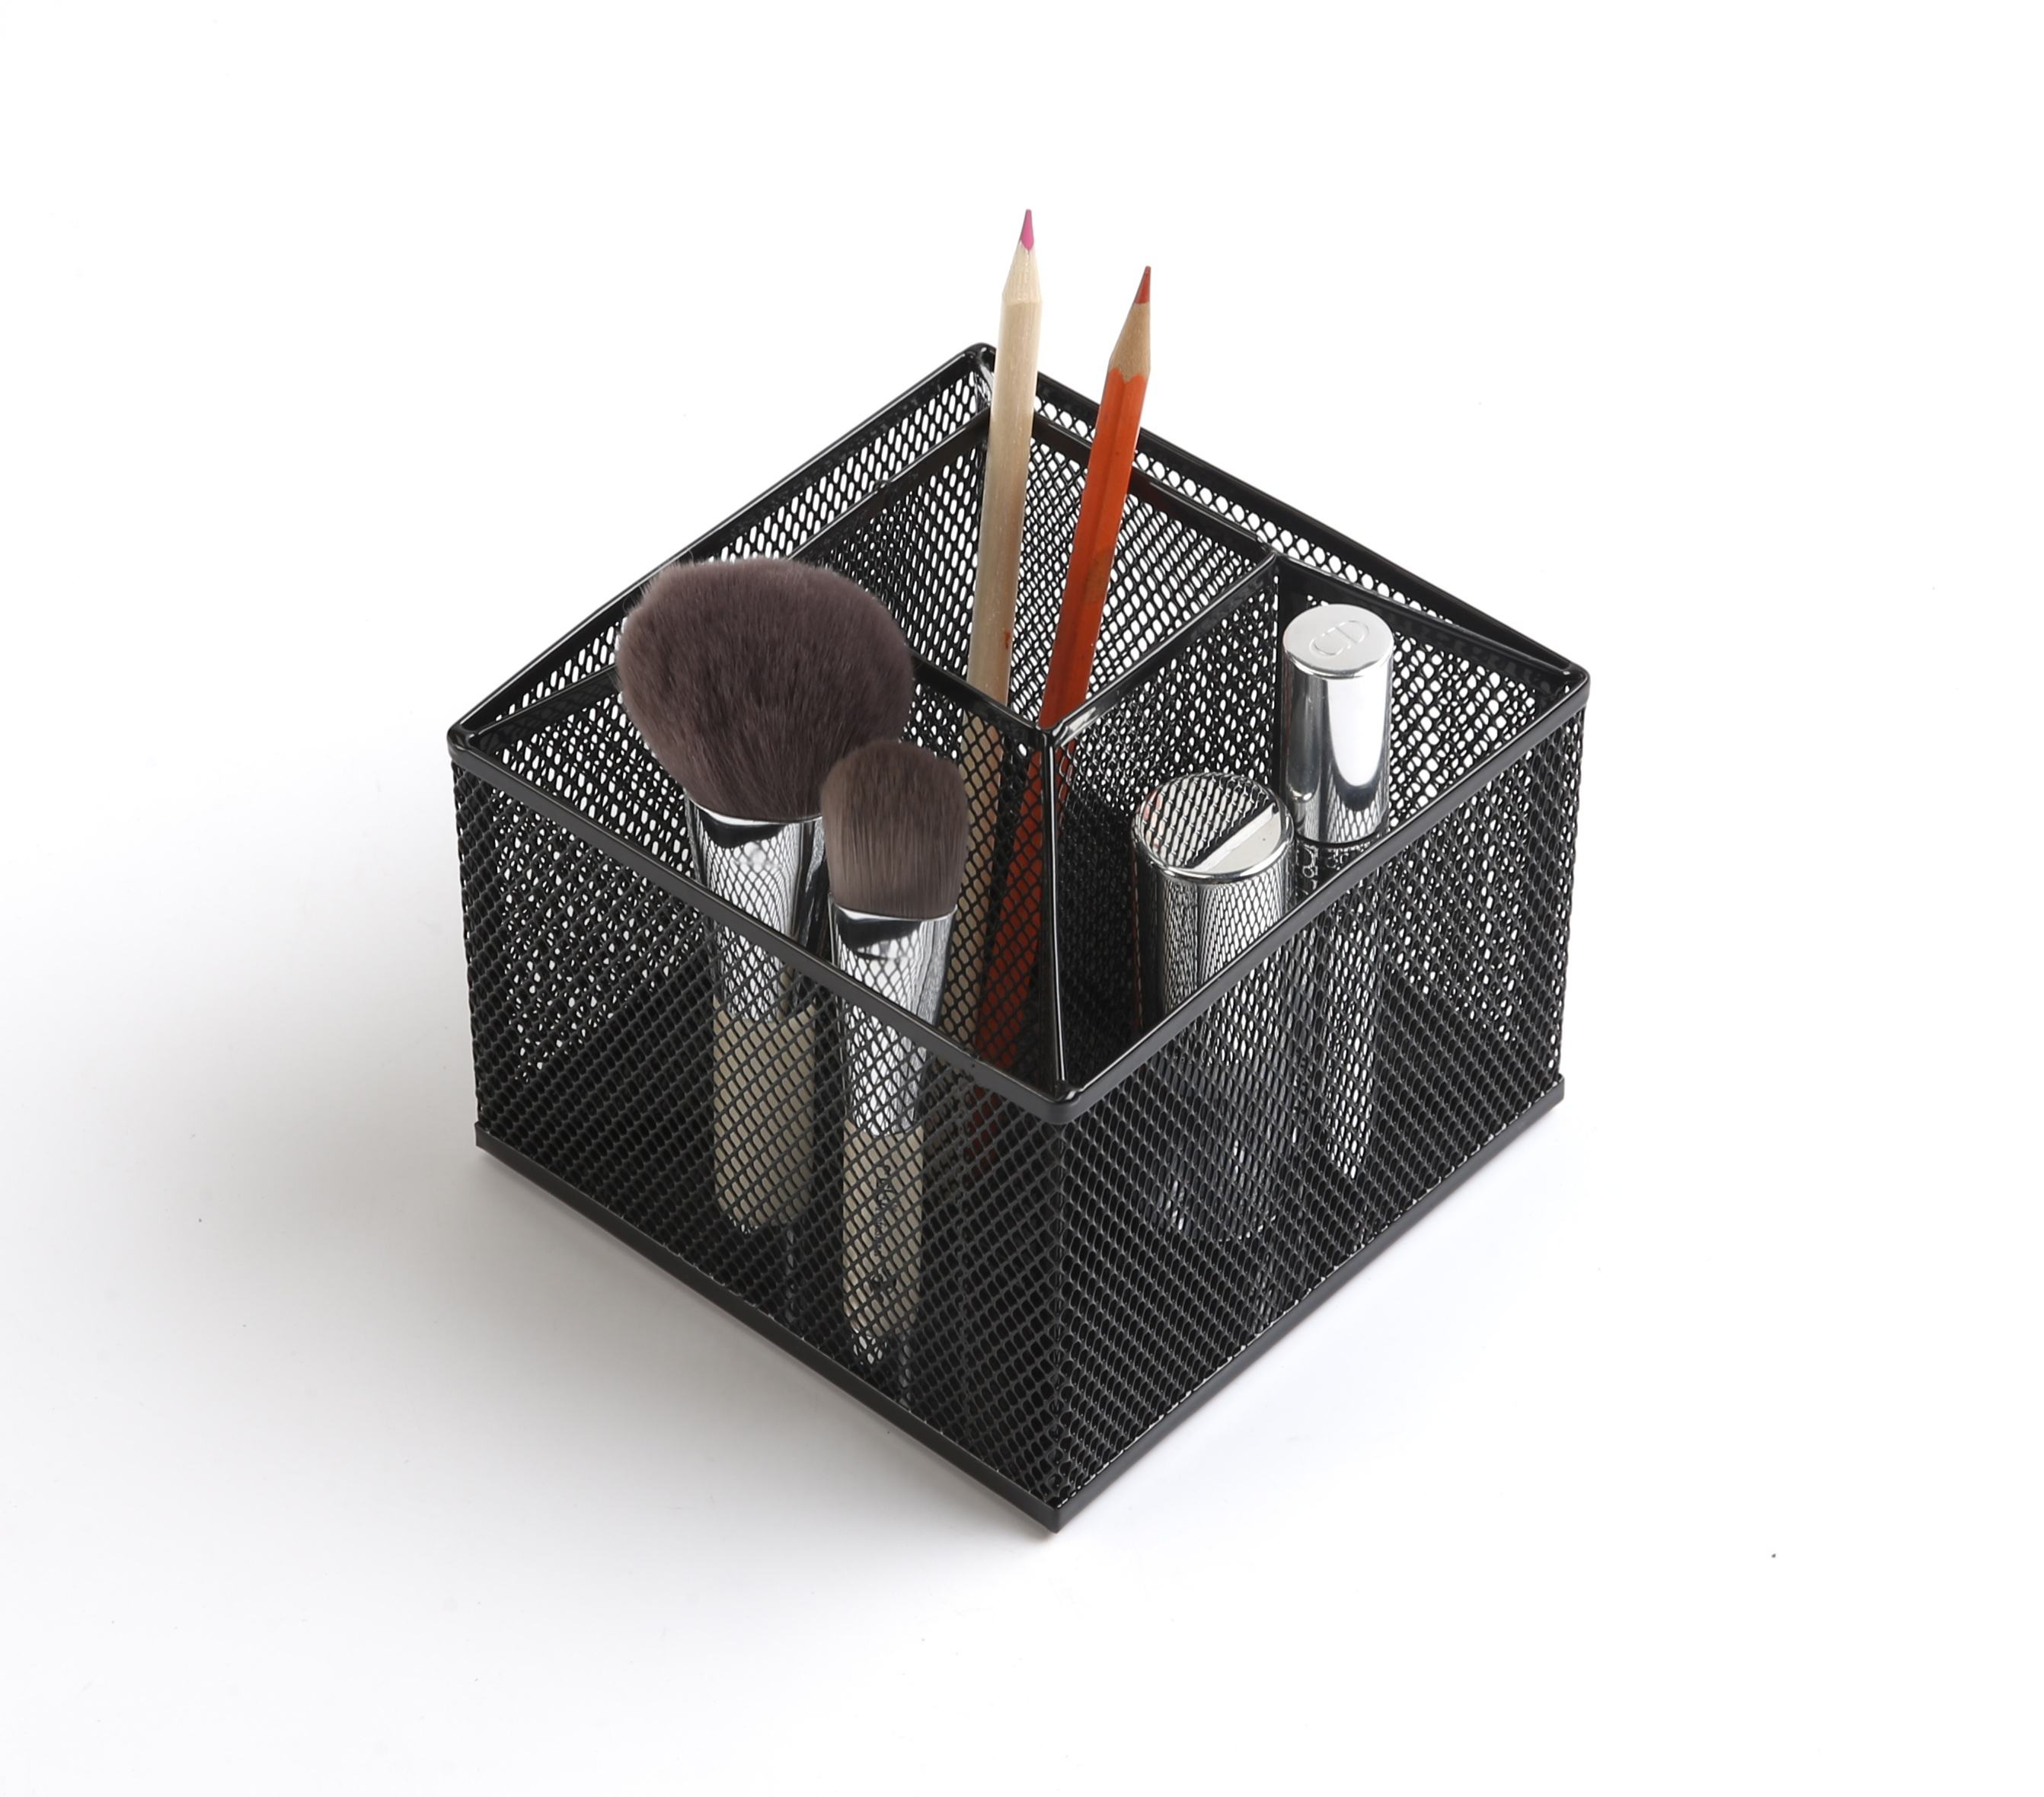 New Arrival Rotating Metal Mesh 5-Compartment Desk Organizer Office Supplies